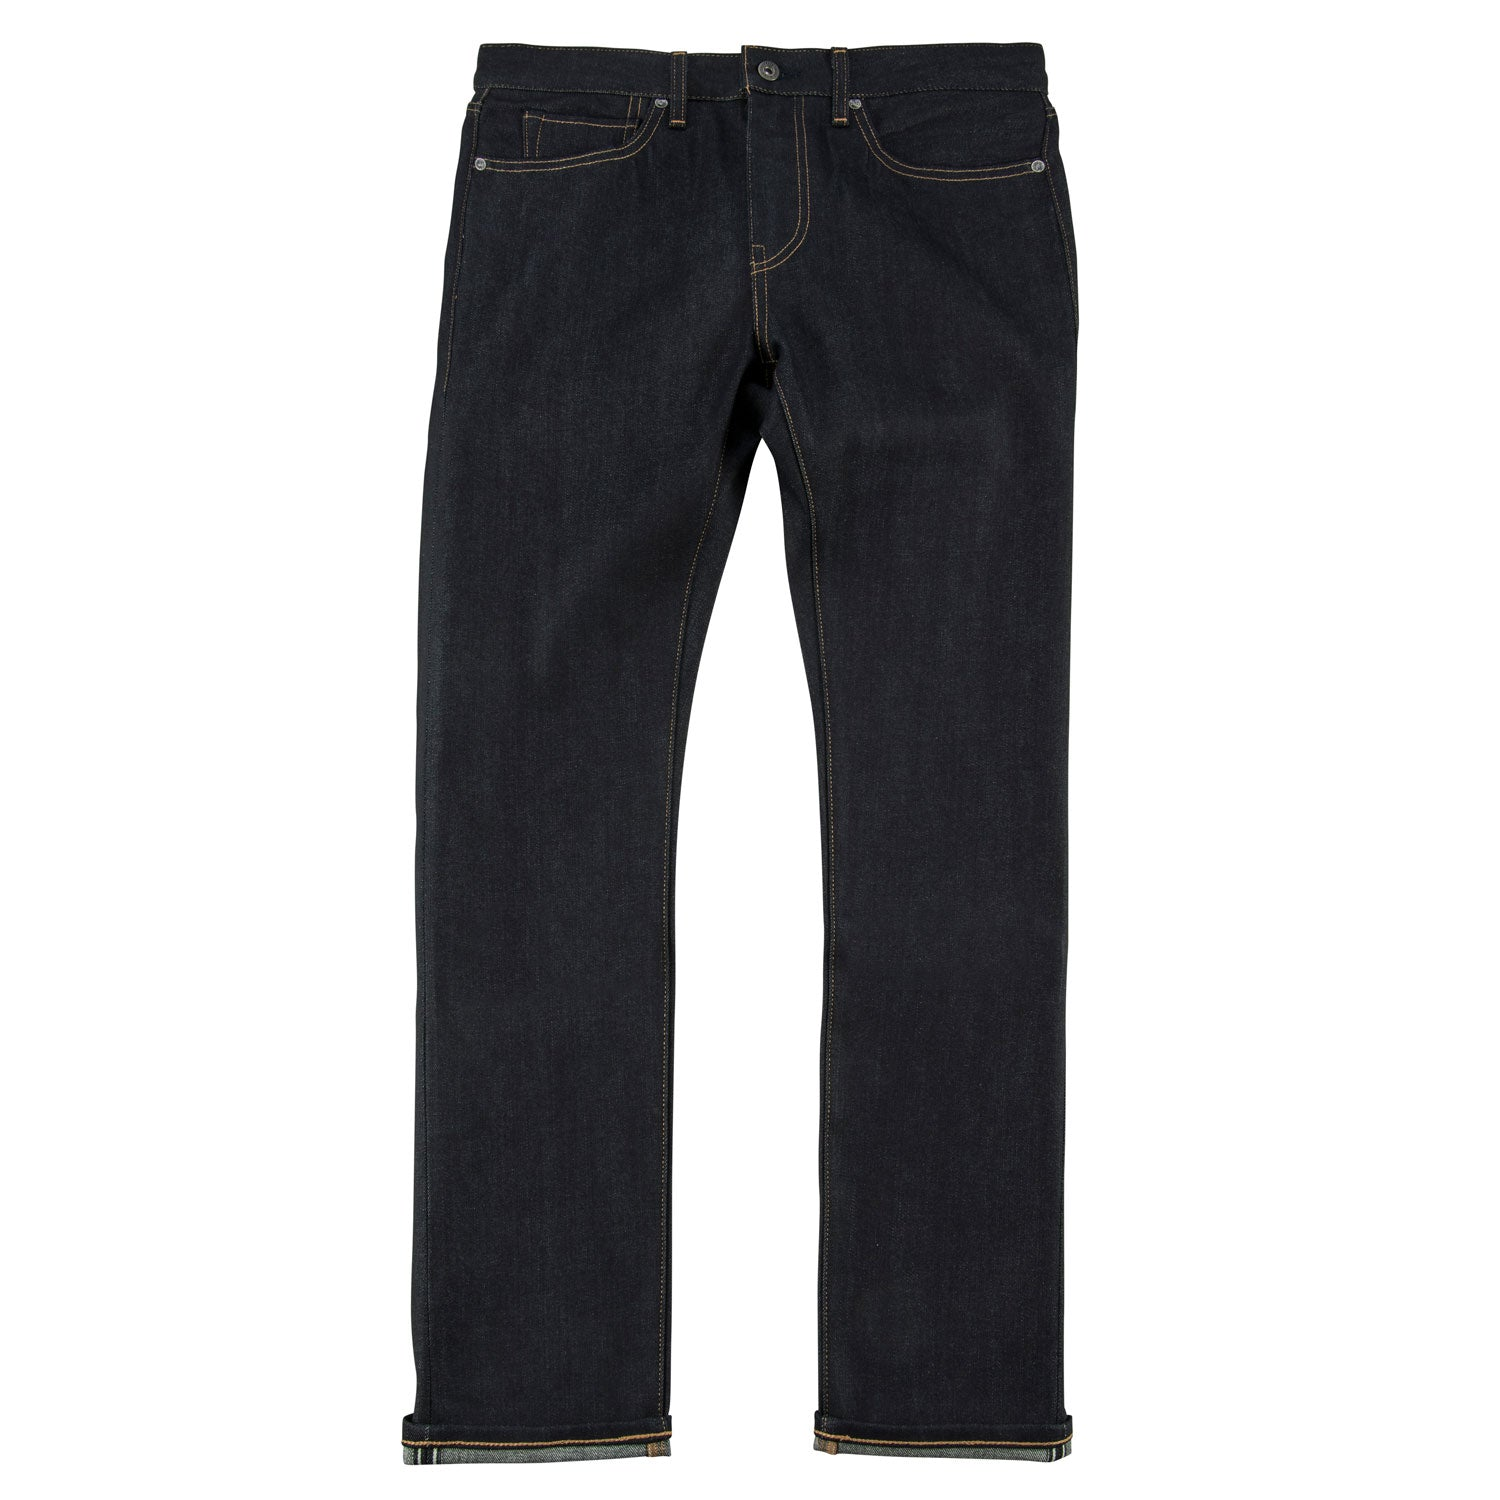 Levi's Made & Crafted Tack Selvedge Indigo Jeans